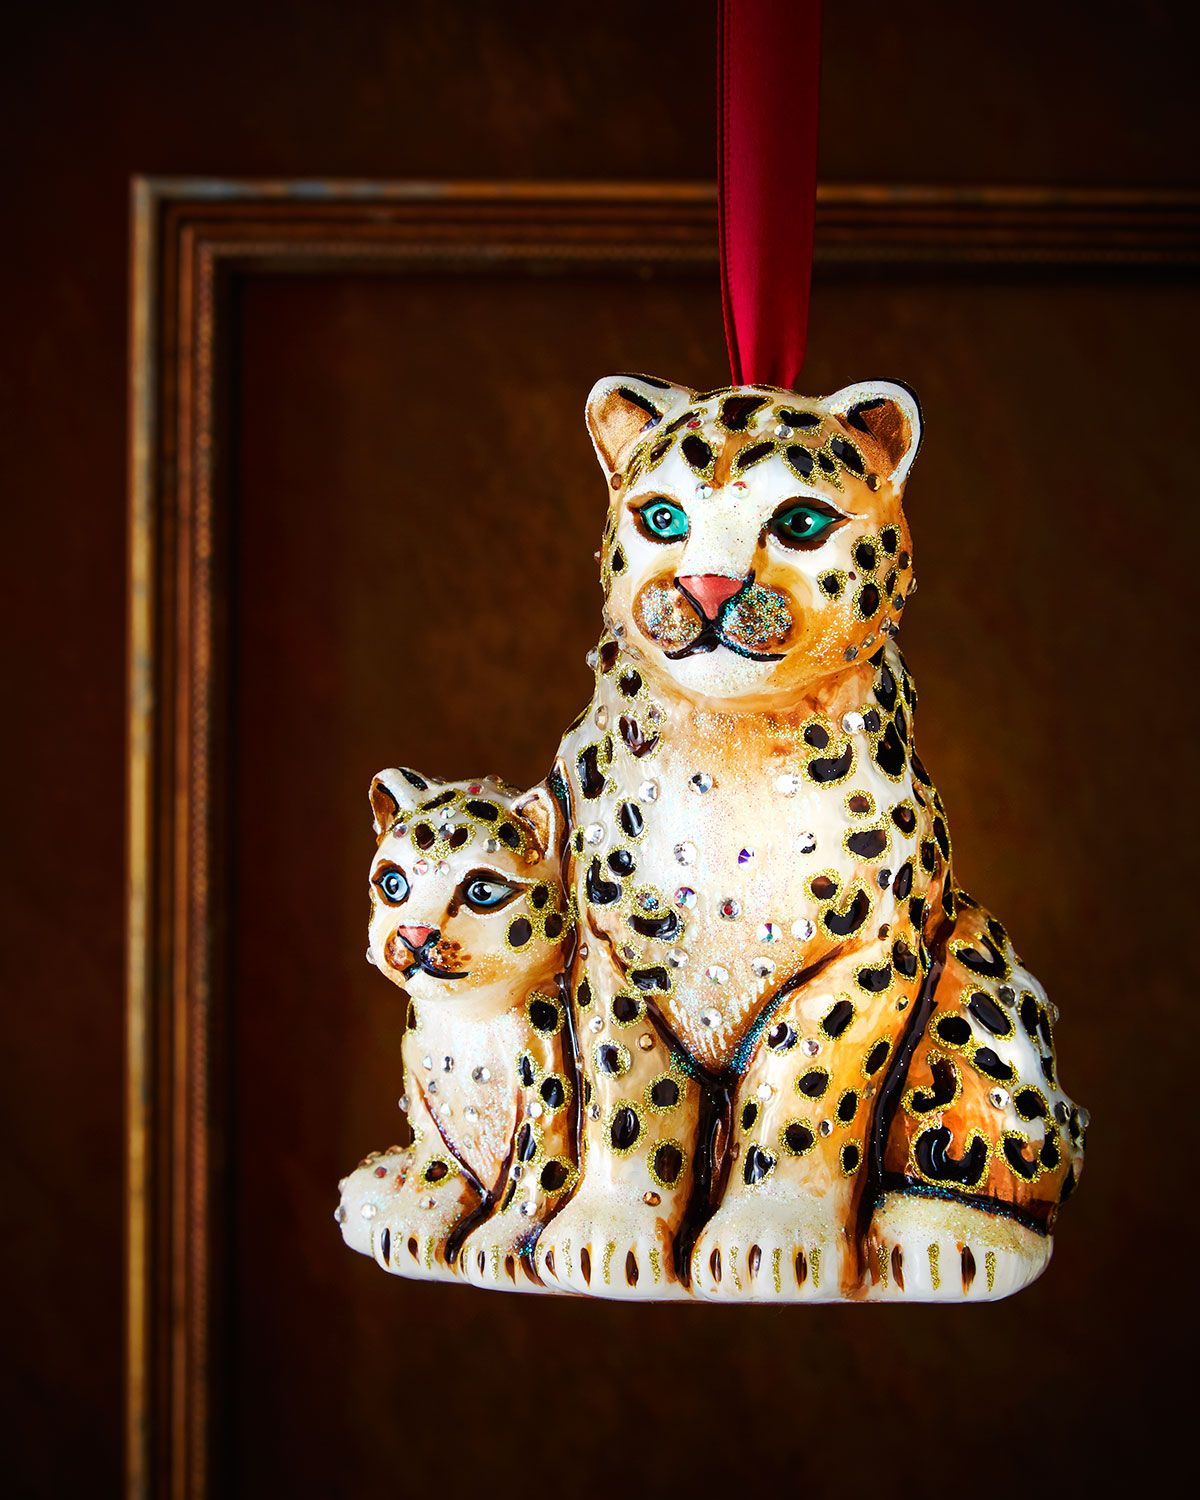 New baby christmas ornament - Shop Mom Baby Snow Leopards Christmas Ornament From Jay Strongwater At Horchow Where You Ll Find New Lower Shipping On Hundreds Of Home Furnishings And